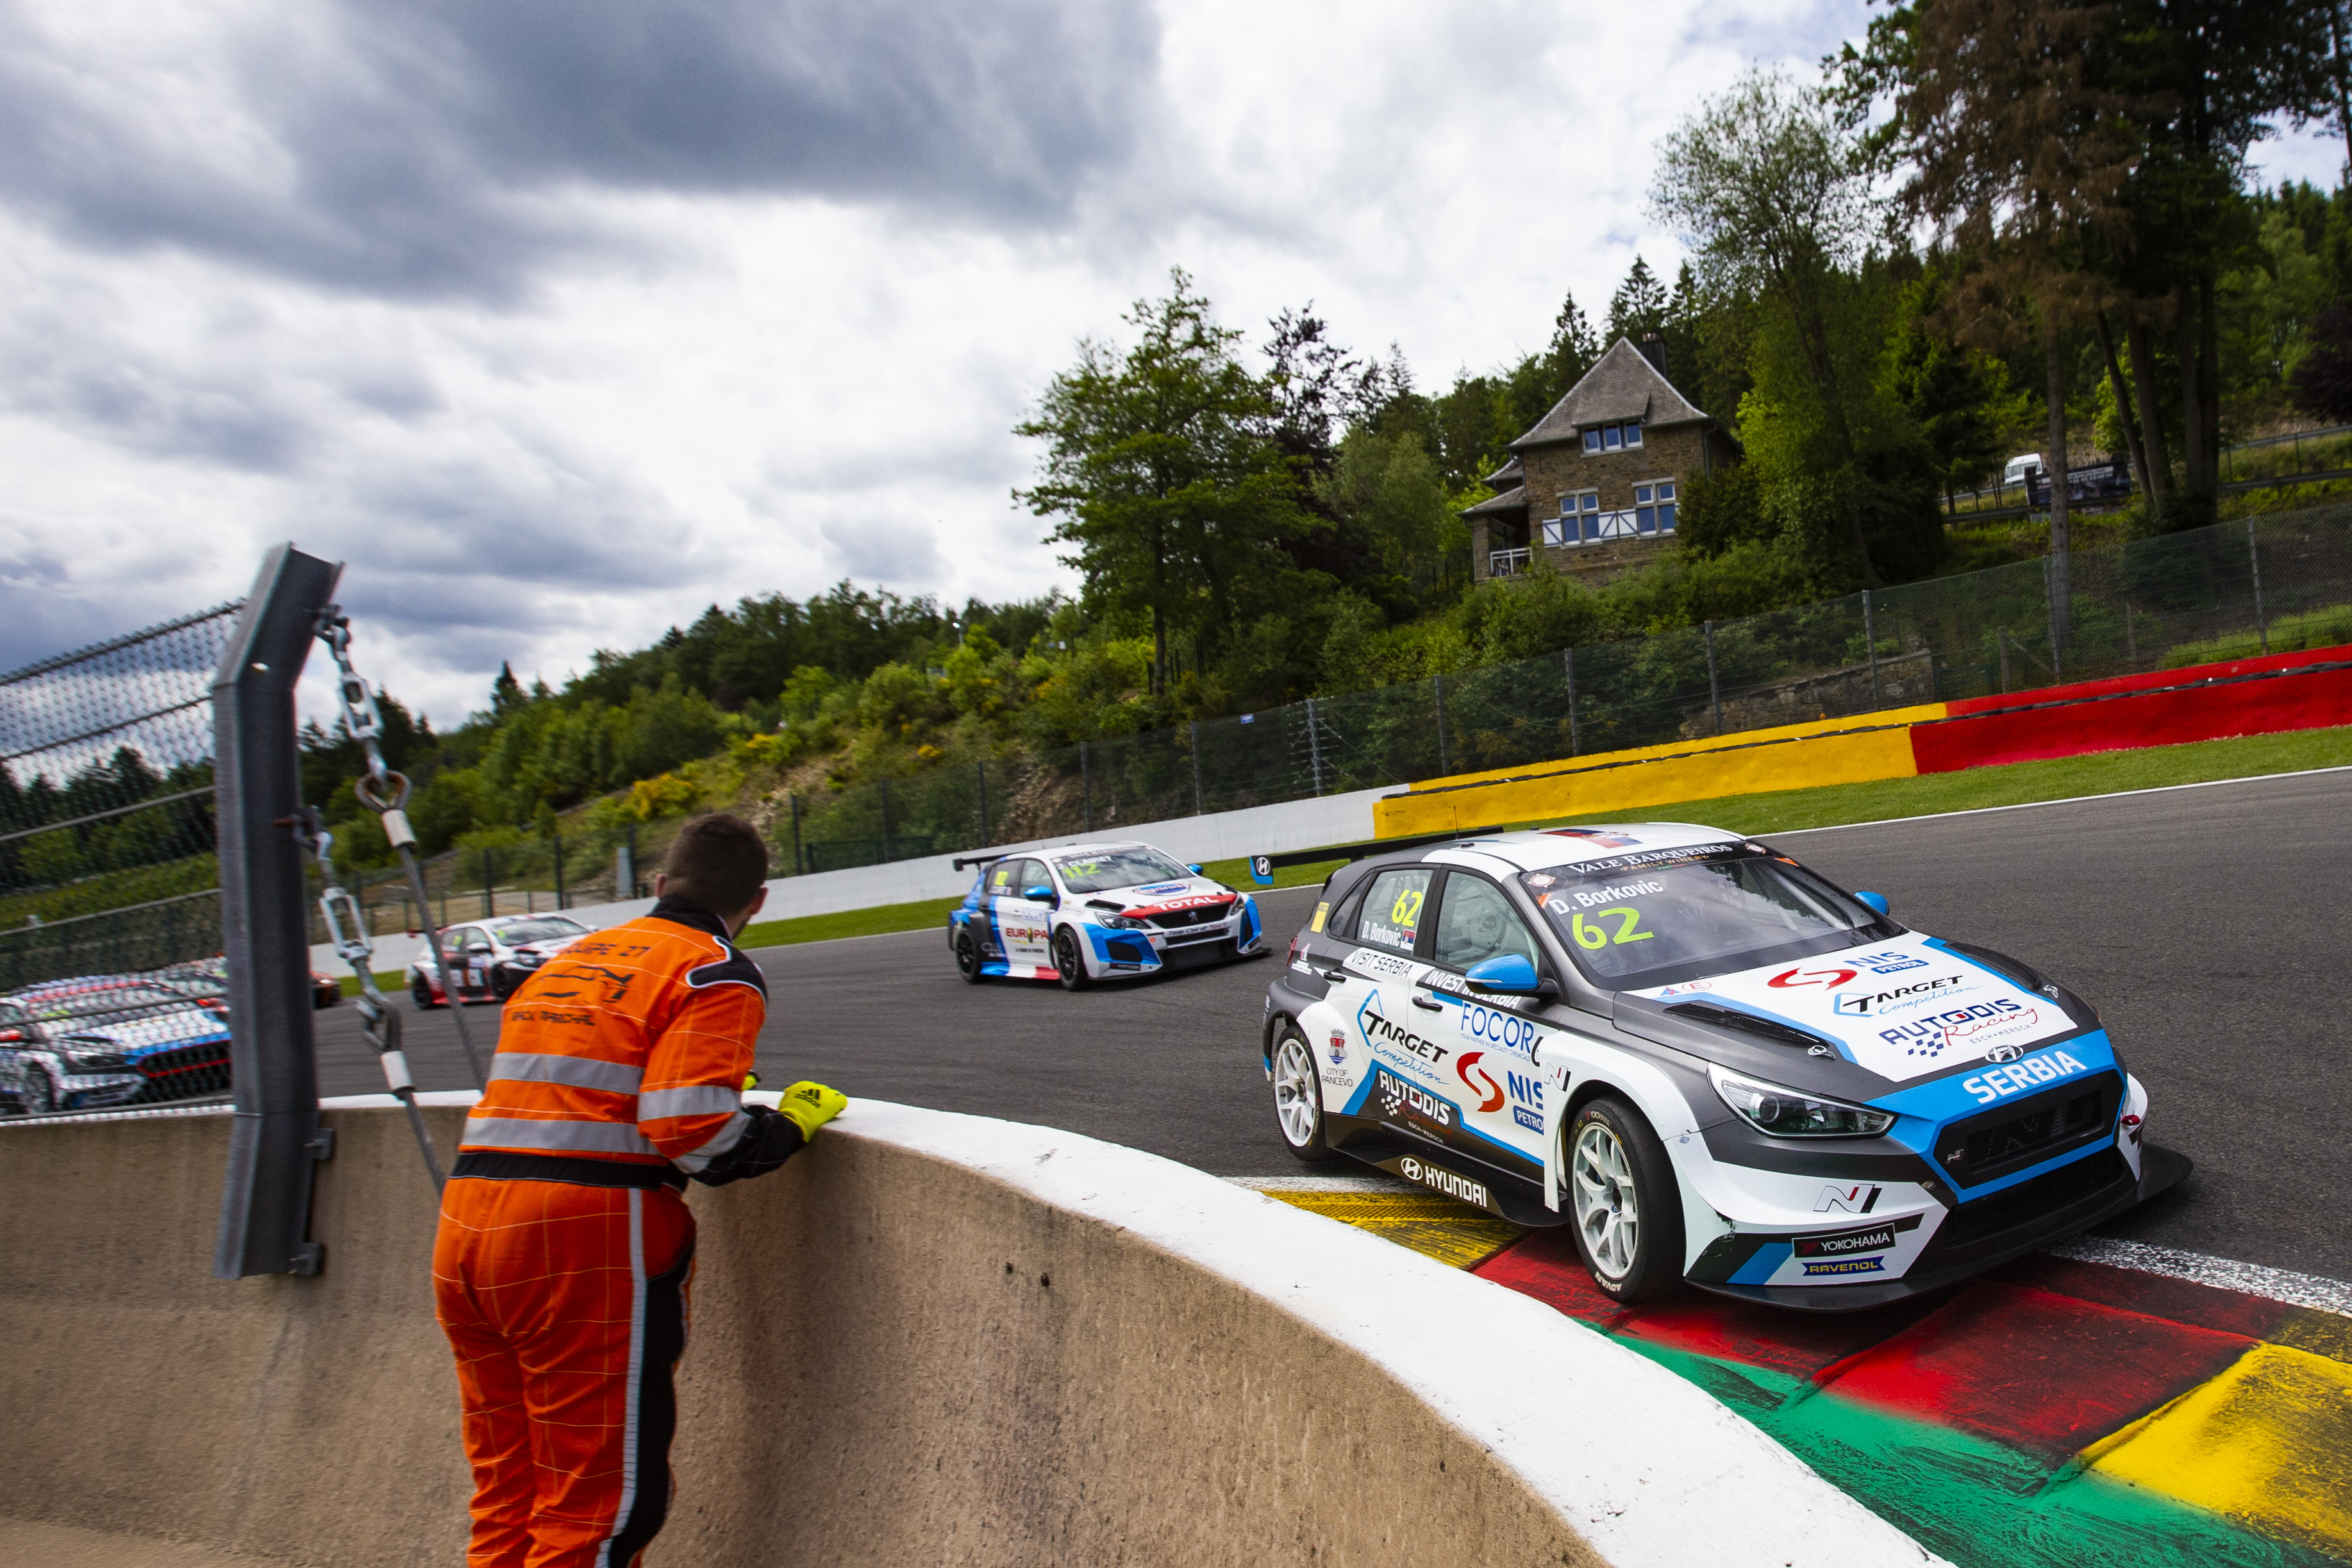 2019 Spa-Francorchamps Race 2